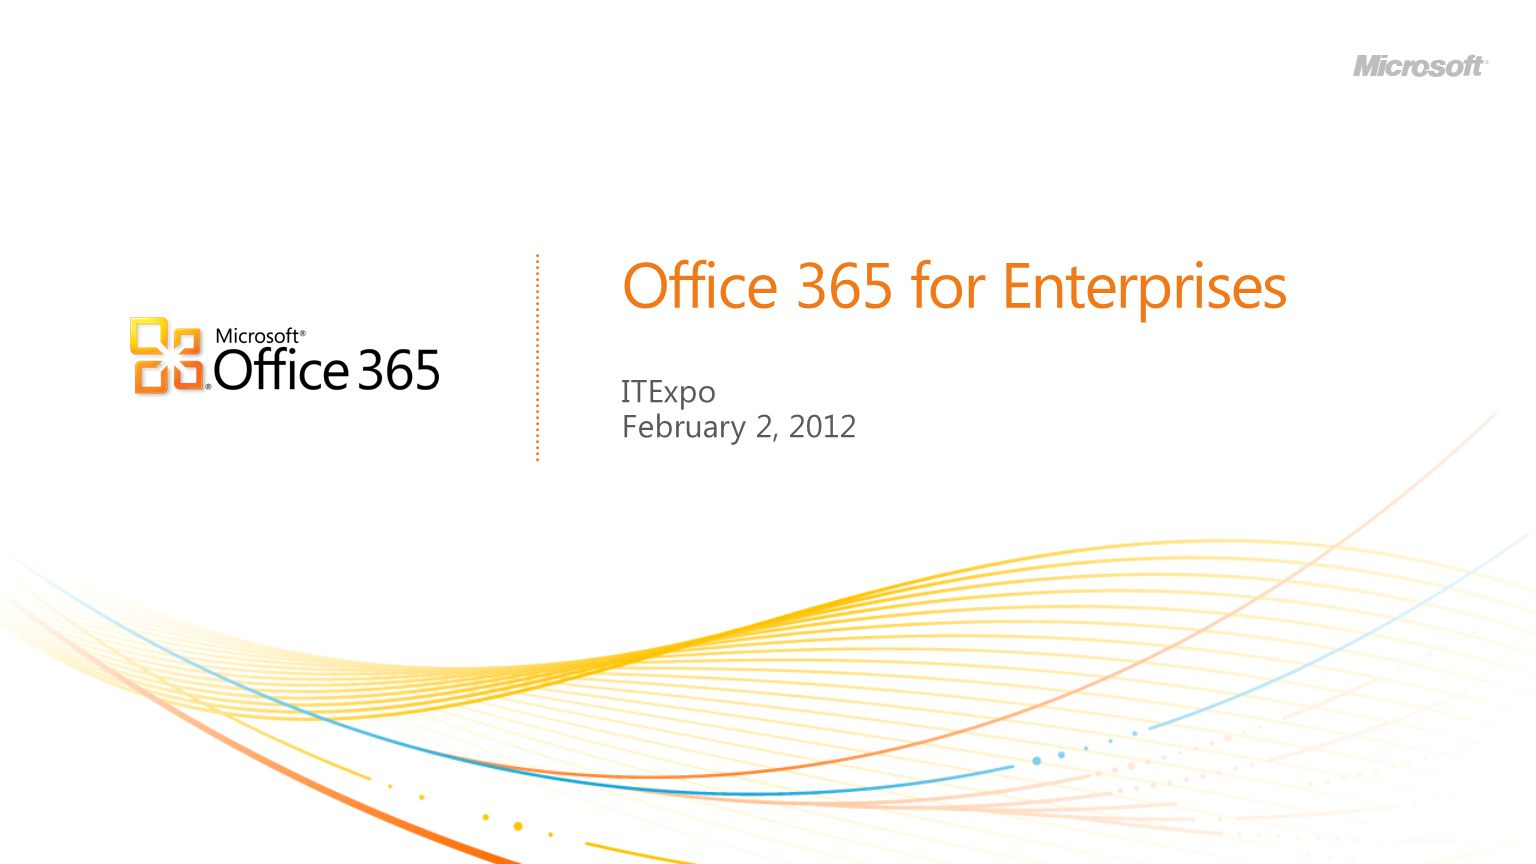 Office 365 for Enterprises ITExpo February 2, 2012